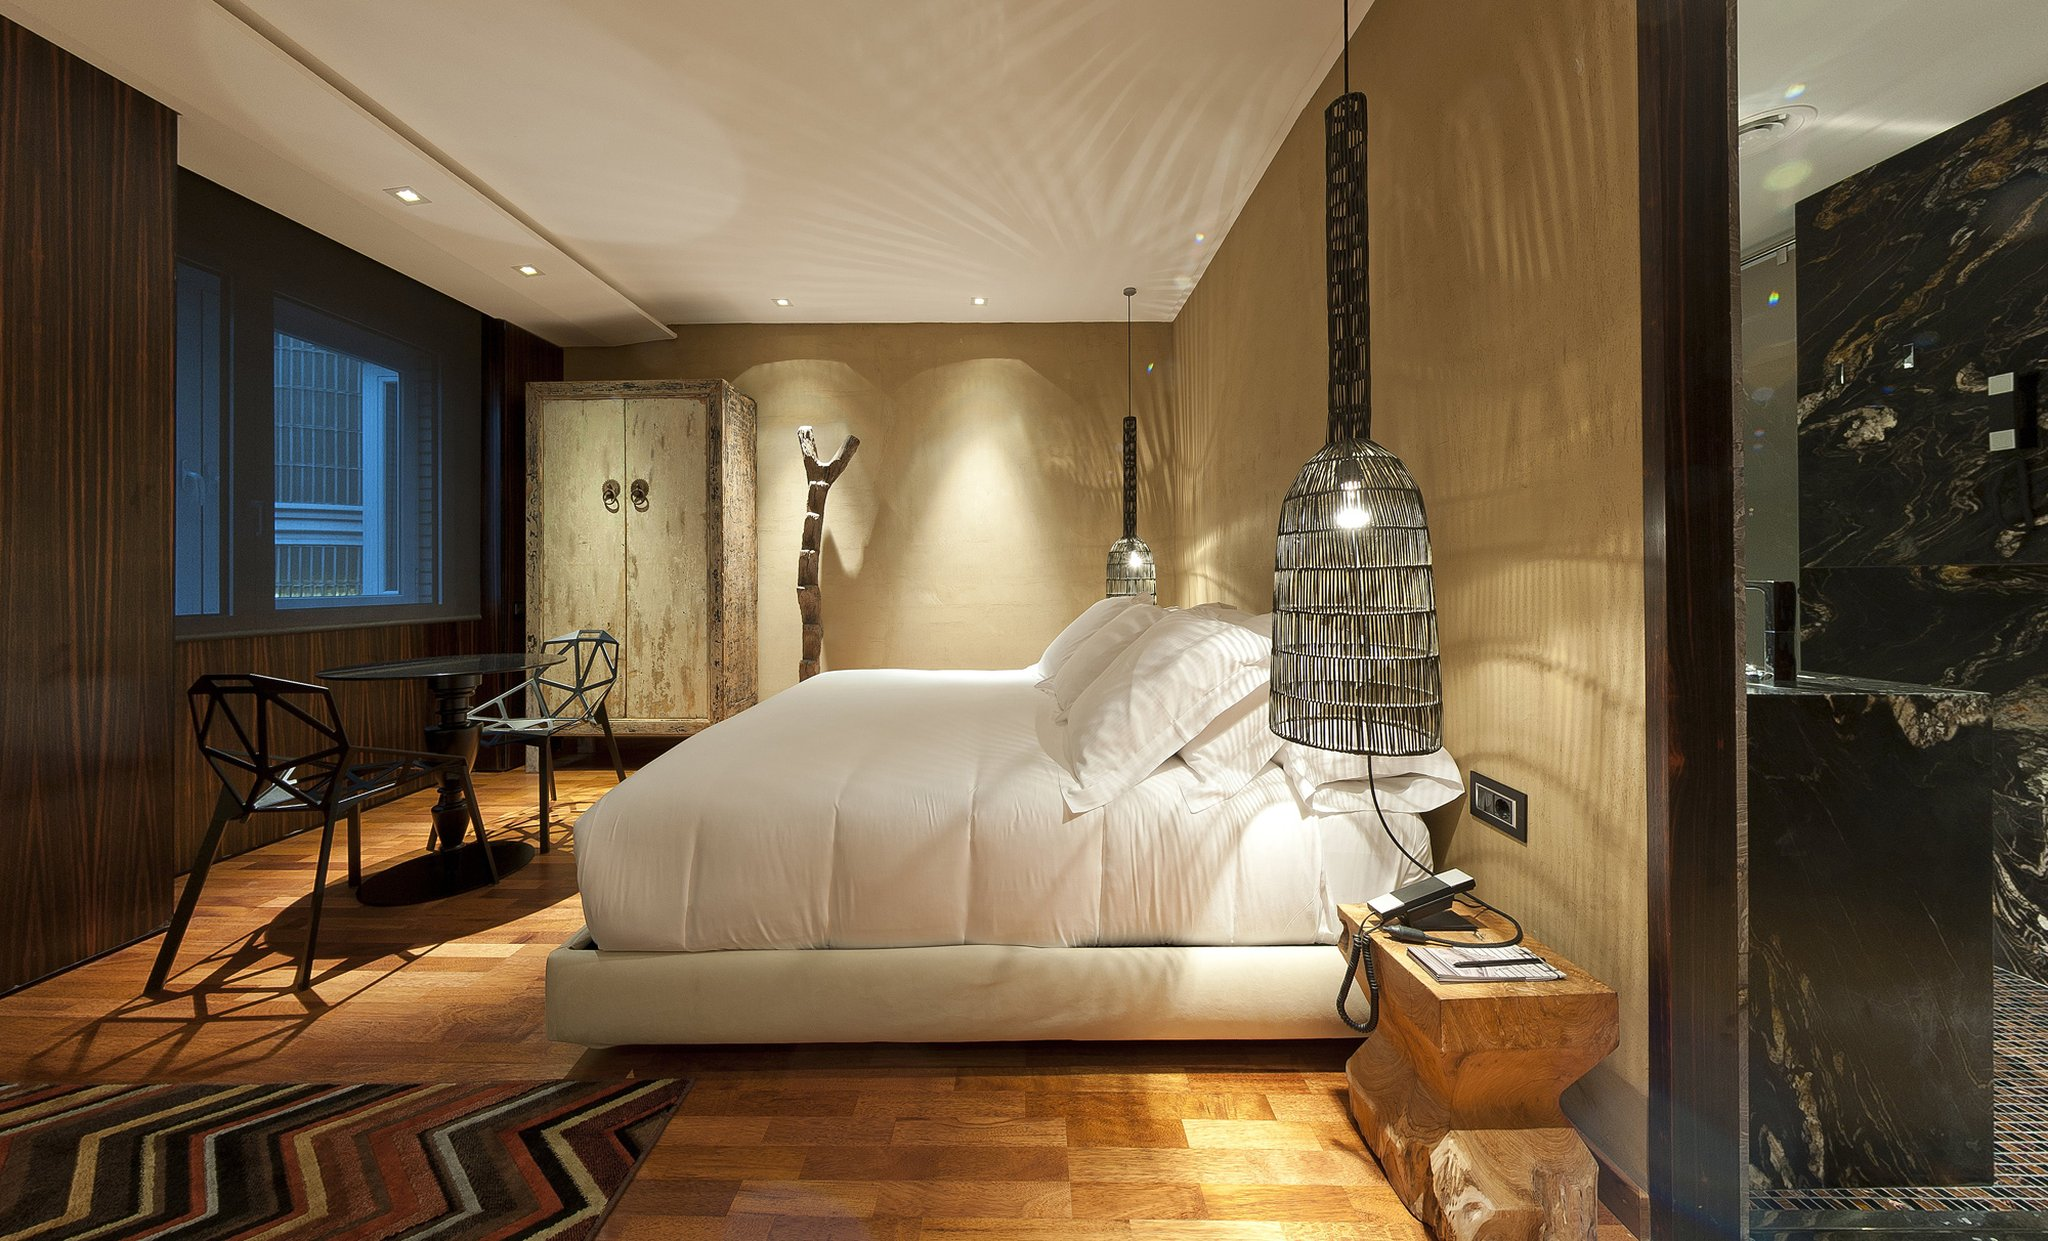 A Chic and Contemporary Boutique Hotel in Barcelona: Hotel Claris